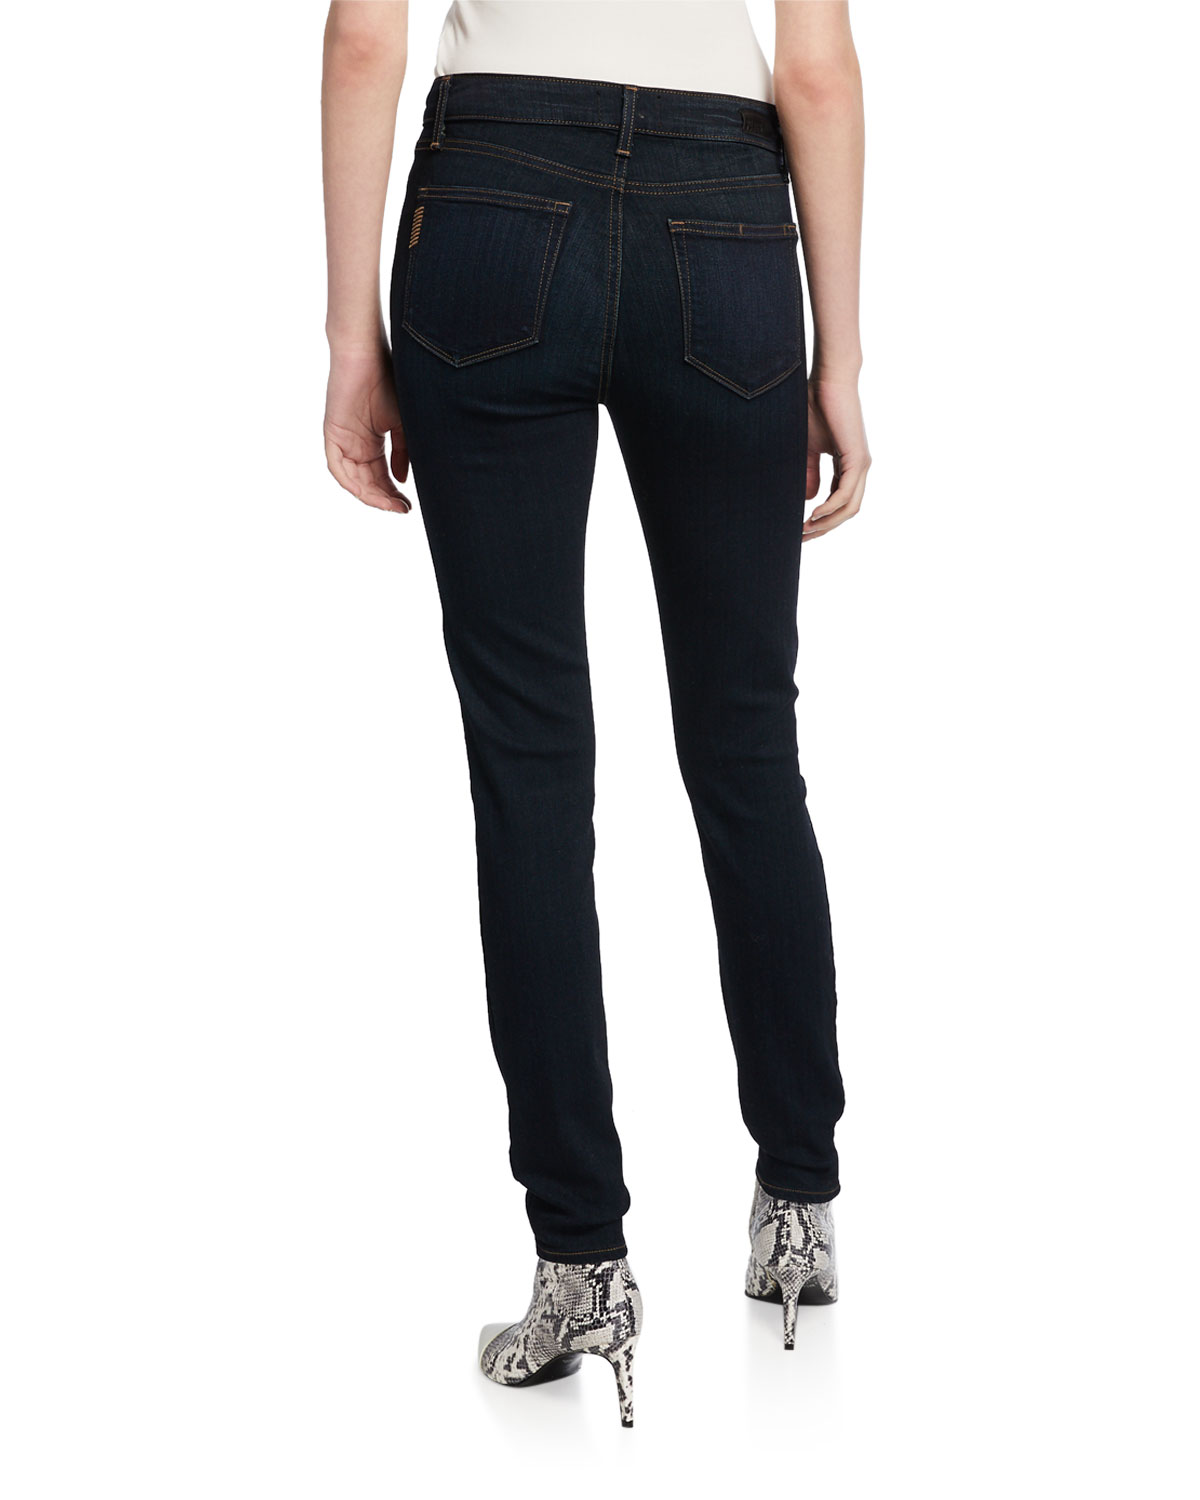 price reduced coupon codes sells Verdugo Ultra-Skinny Ankle Jeans, Nottingham